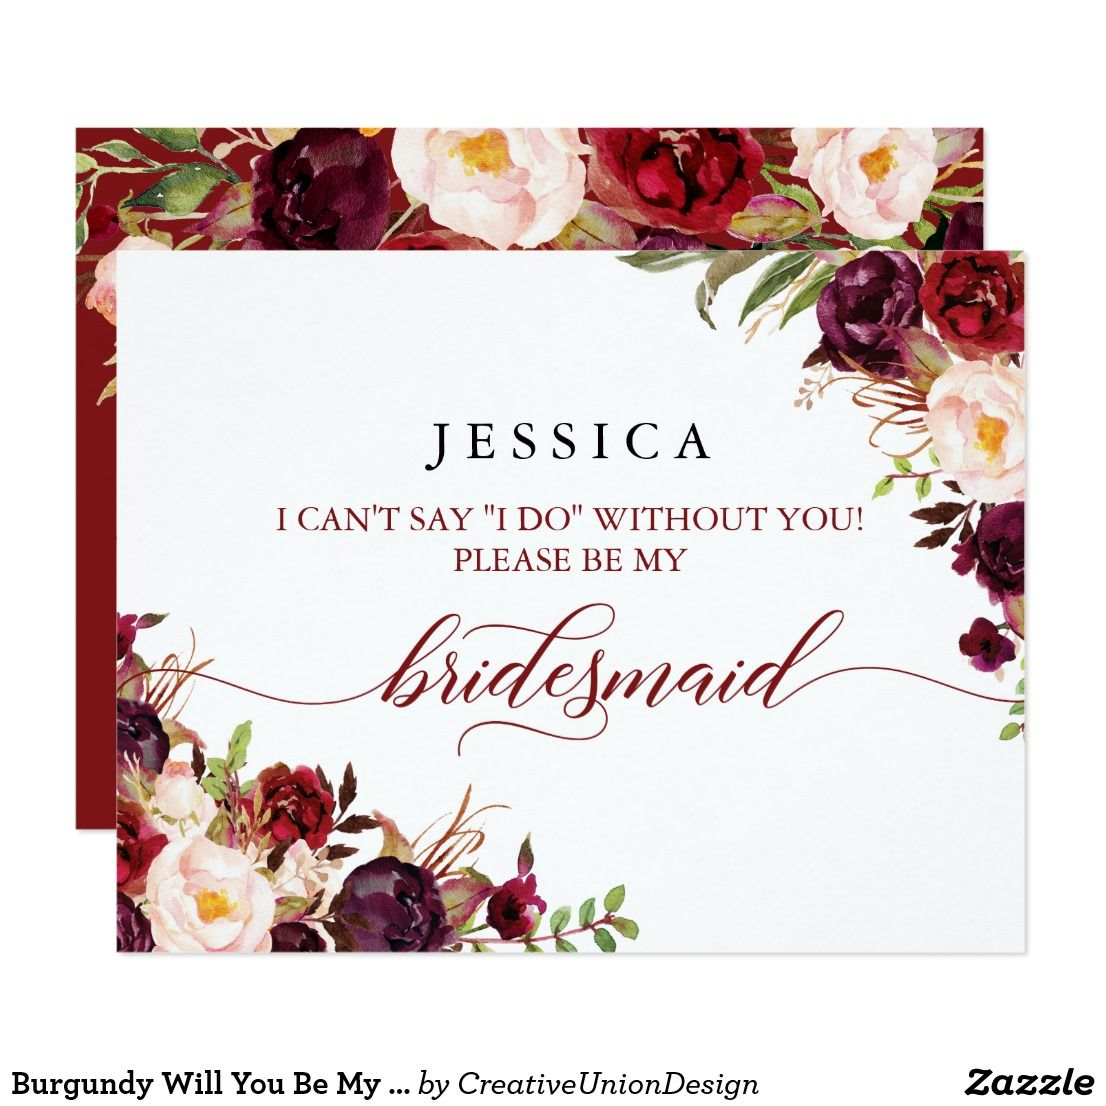 Burgundy will you be my bridesmaid card